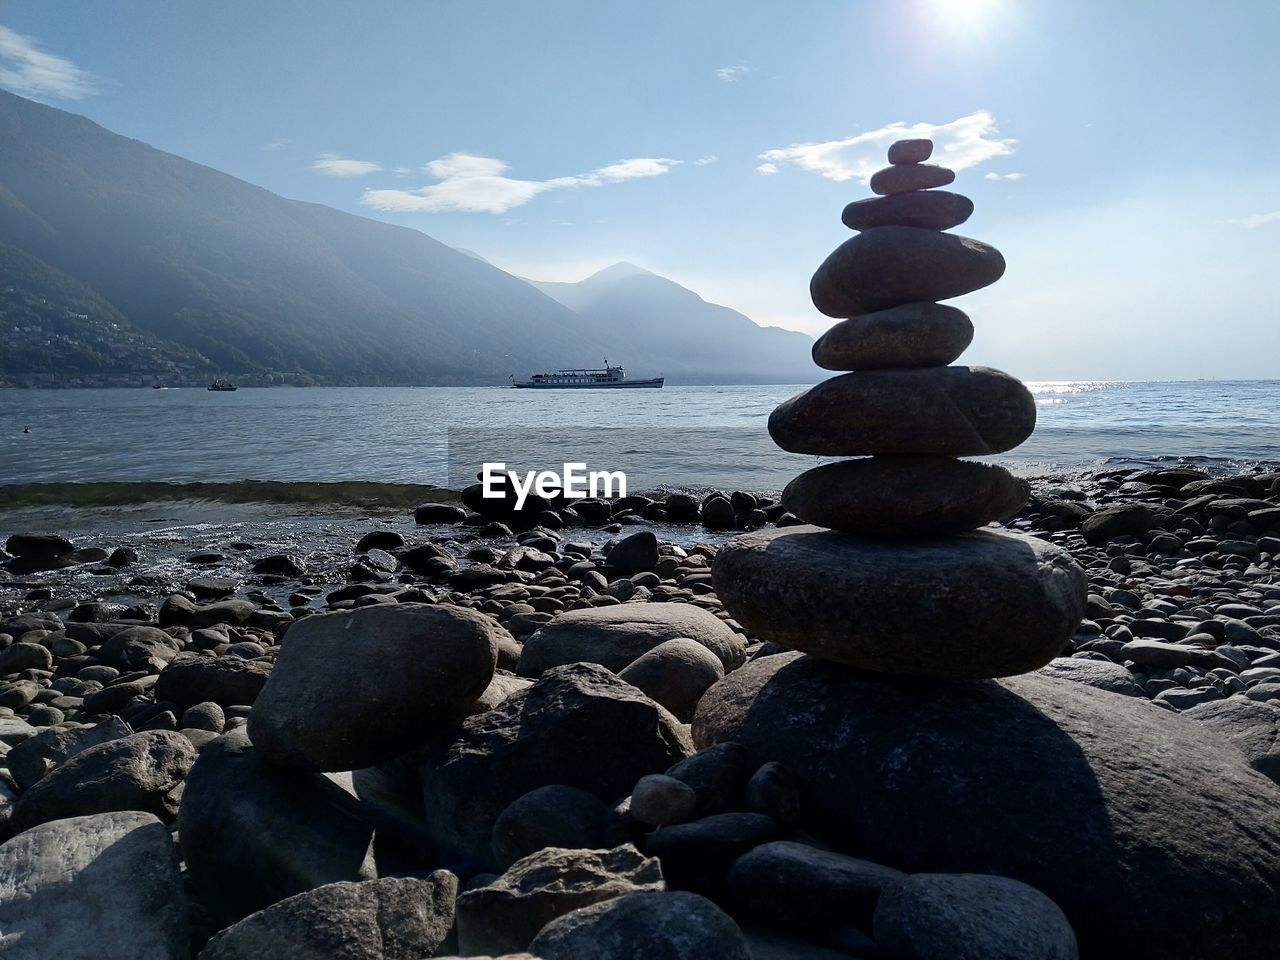 water, solid, rock, sky, stack, stone - object, sea, beach, scenics - nature, beauty in nature, rock - object, tranquility, pebble, balance, stone, nature, tranquil scene, land, zen-like, no people